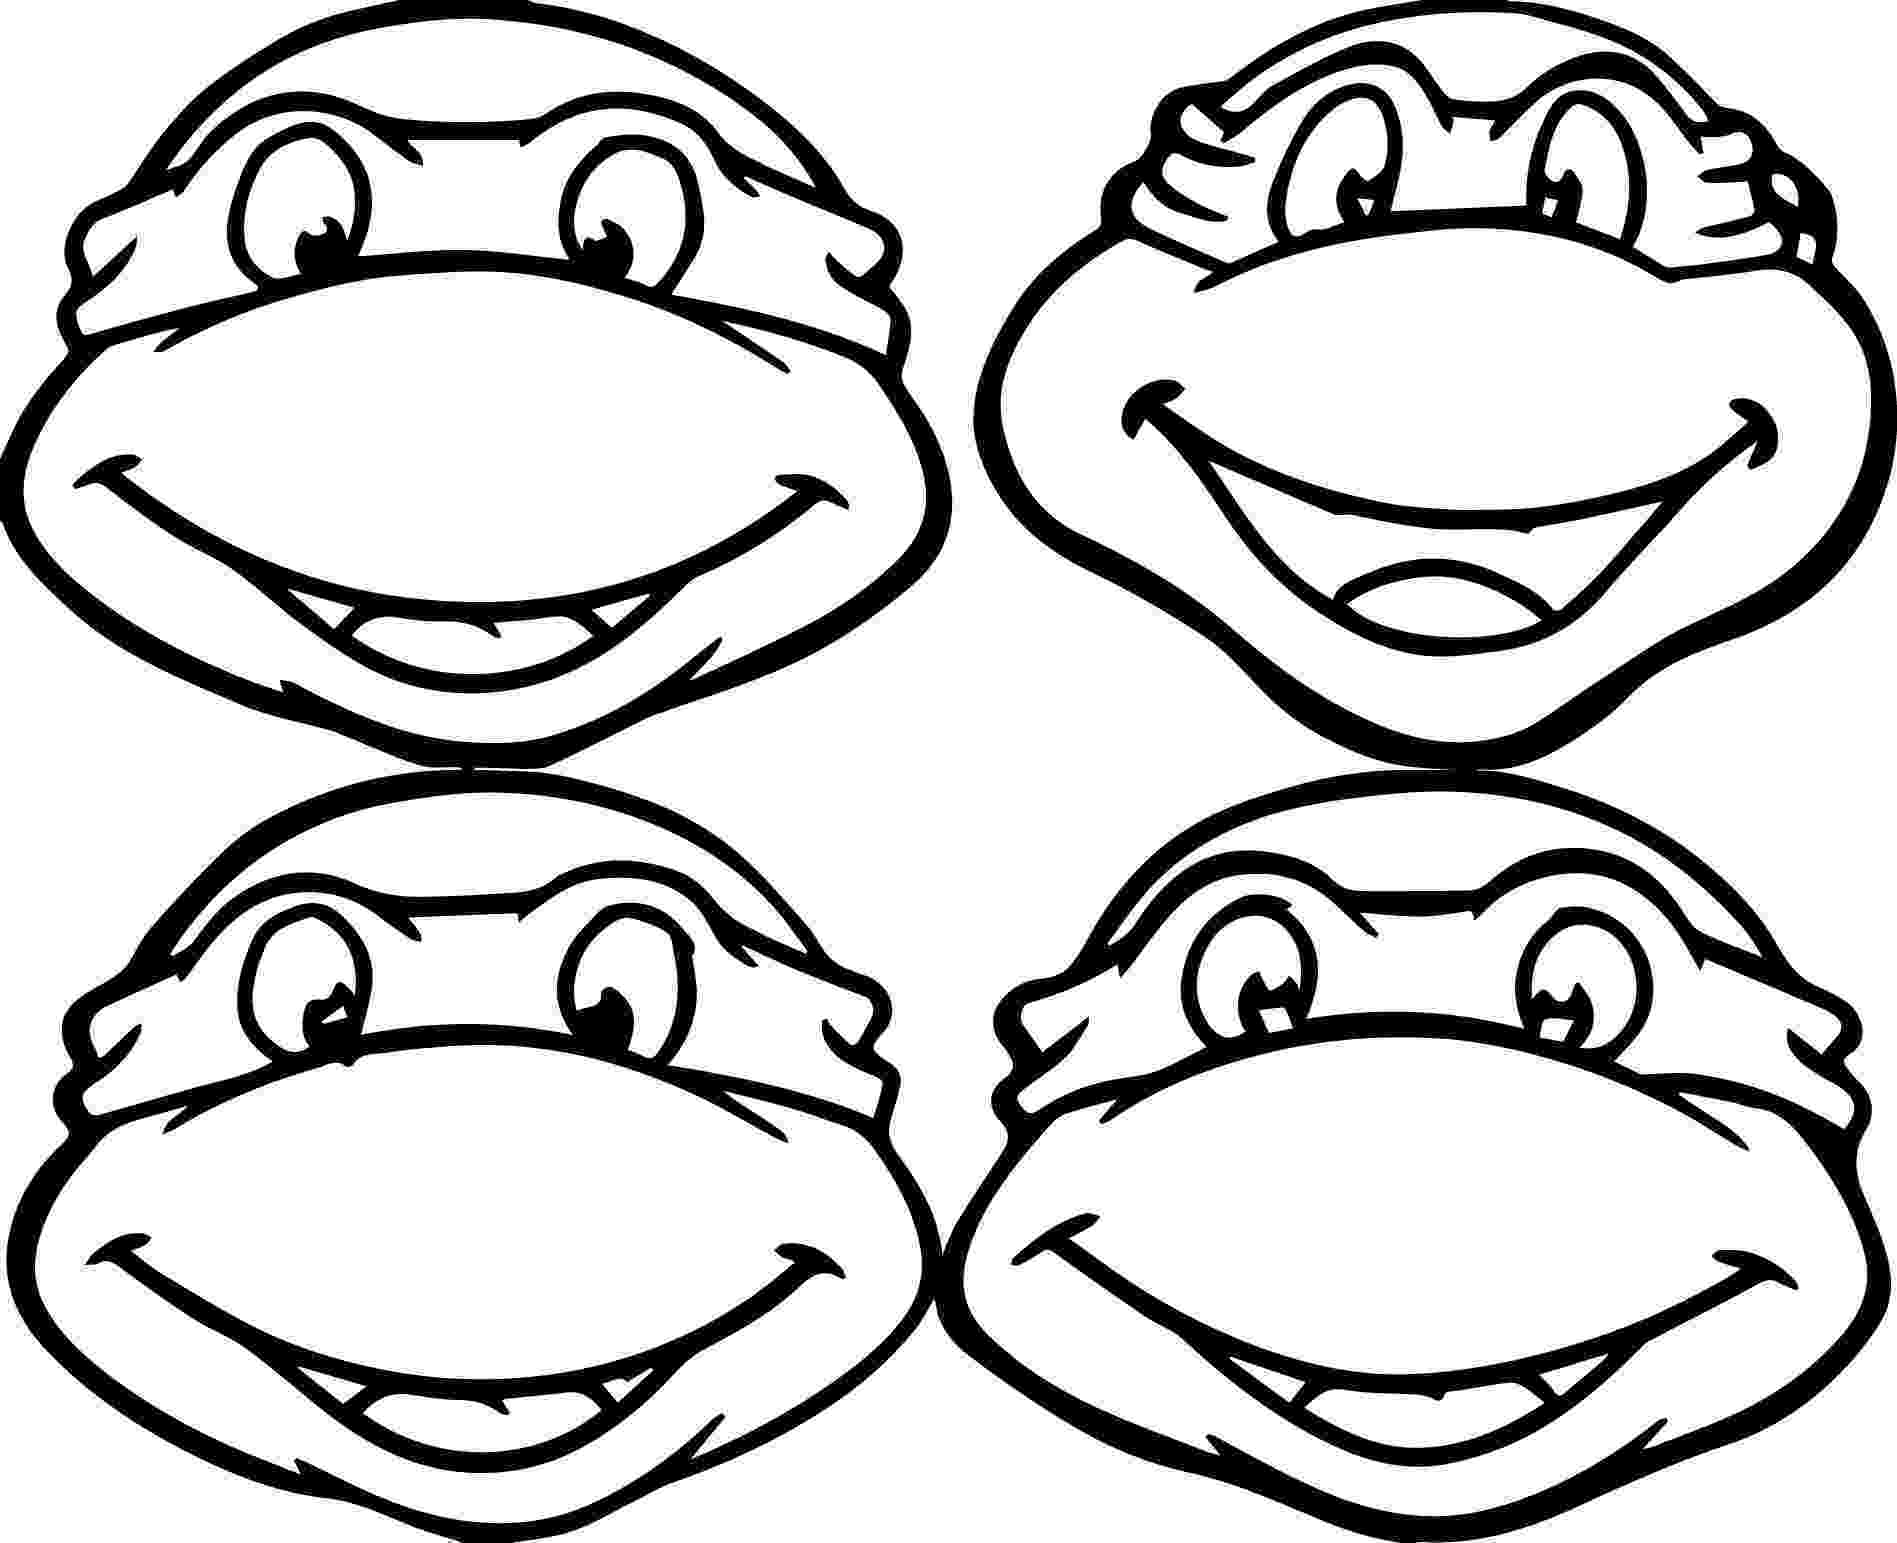 free tmnt coloring pages teenage mutant ninja turtles coloring pages best tmnt coloring pages free 1 1